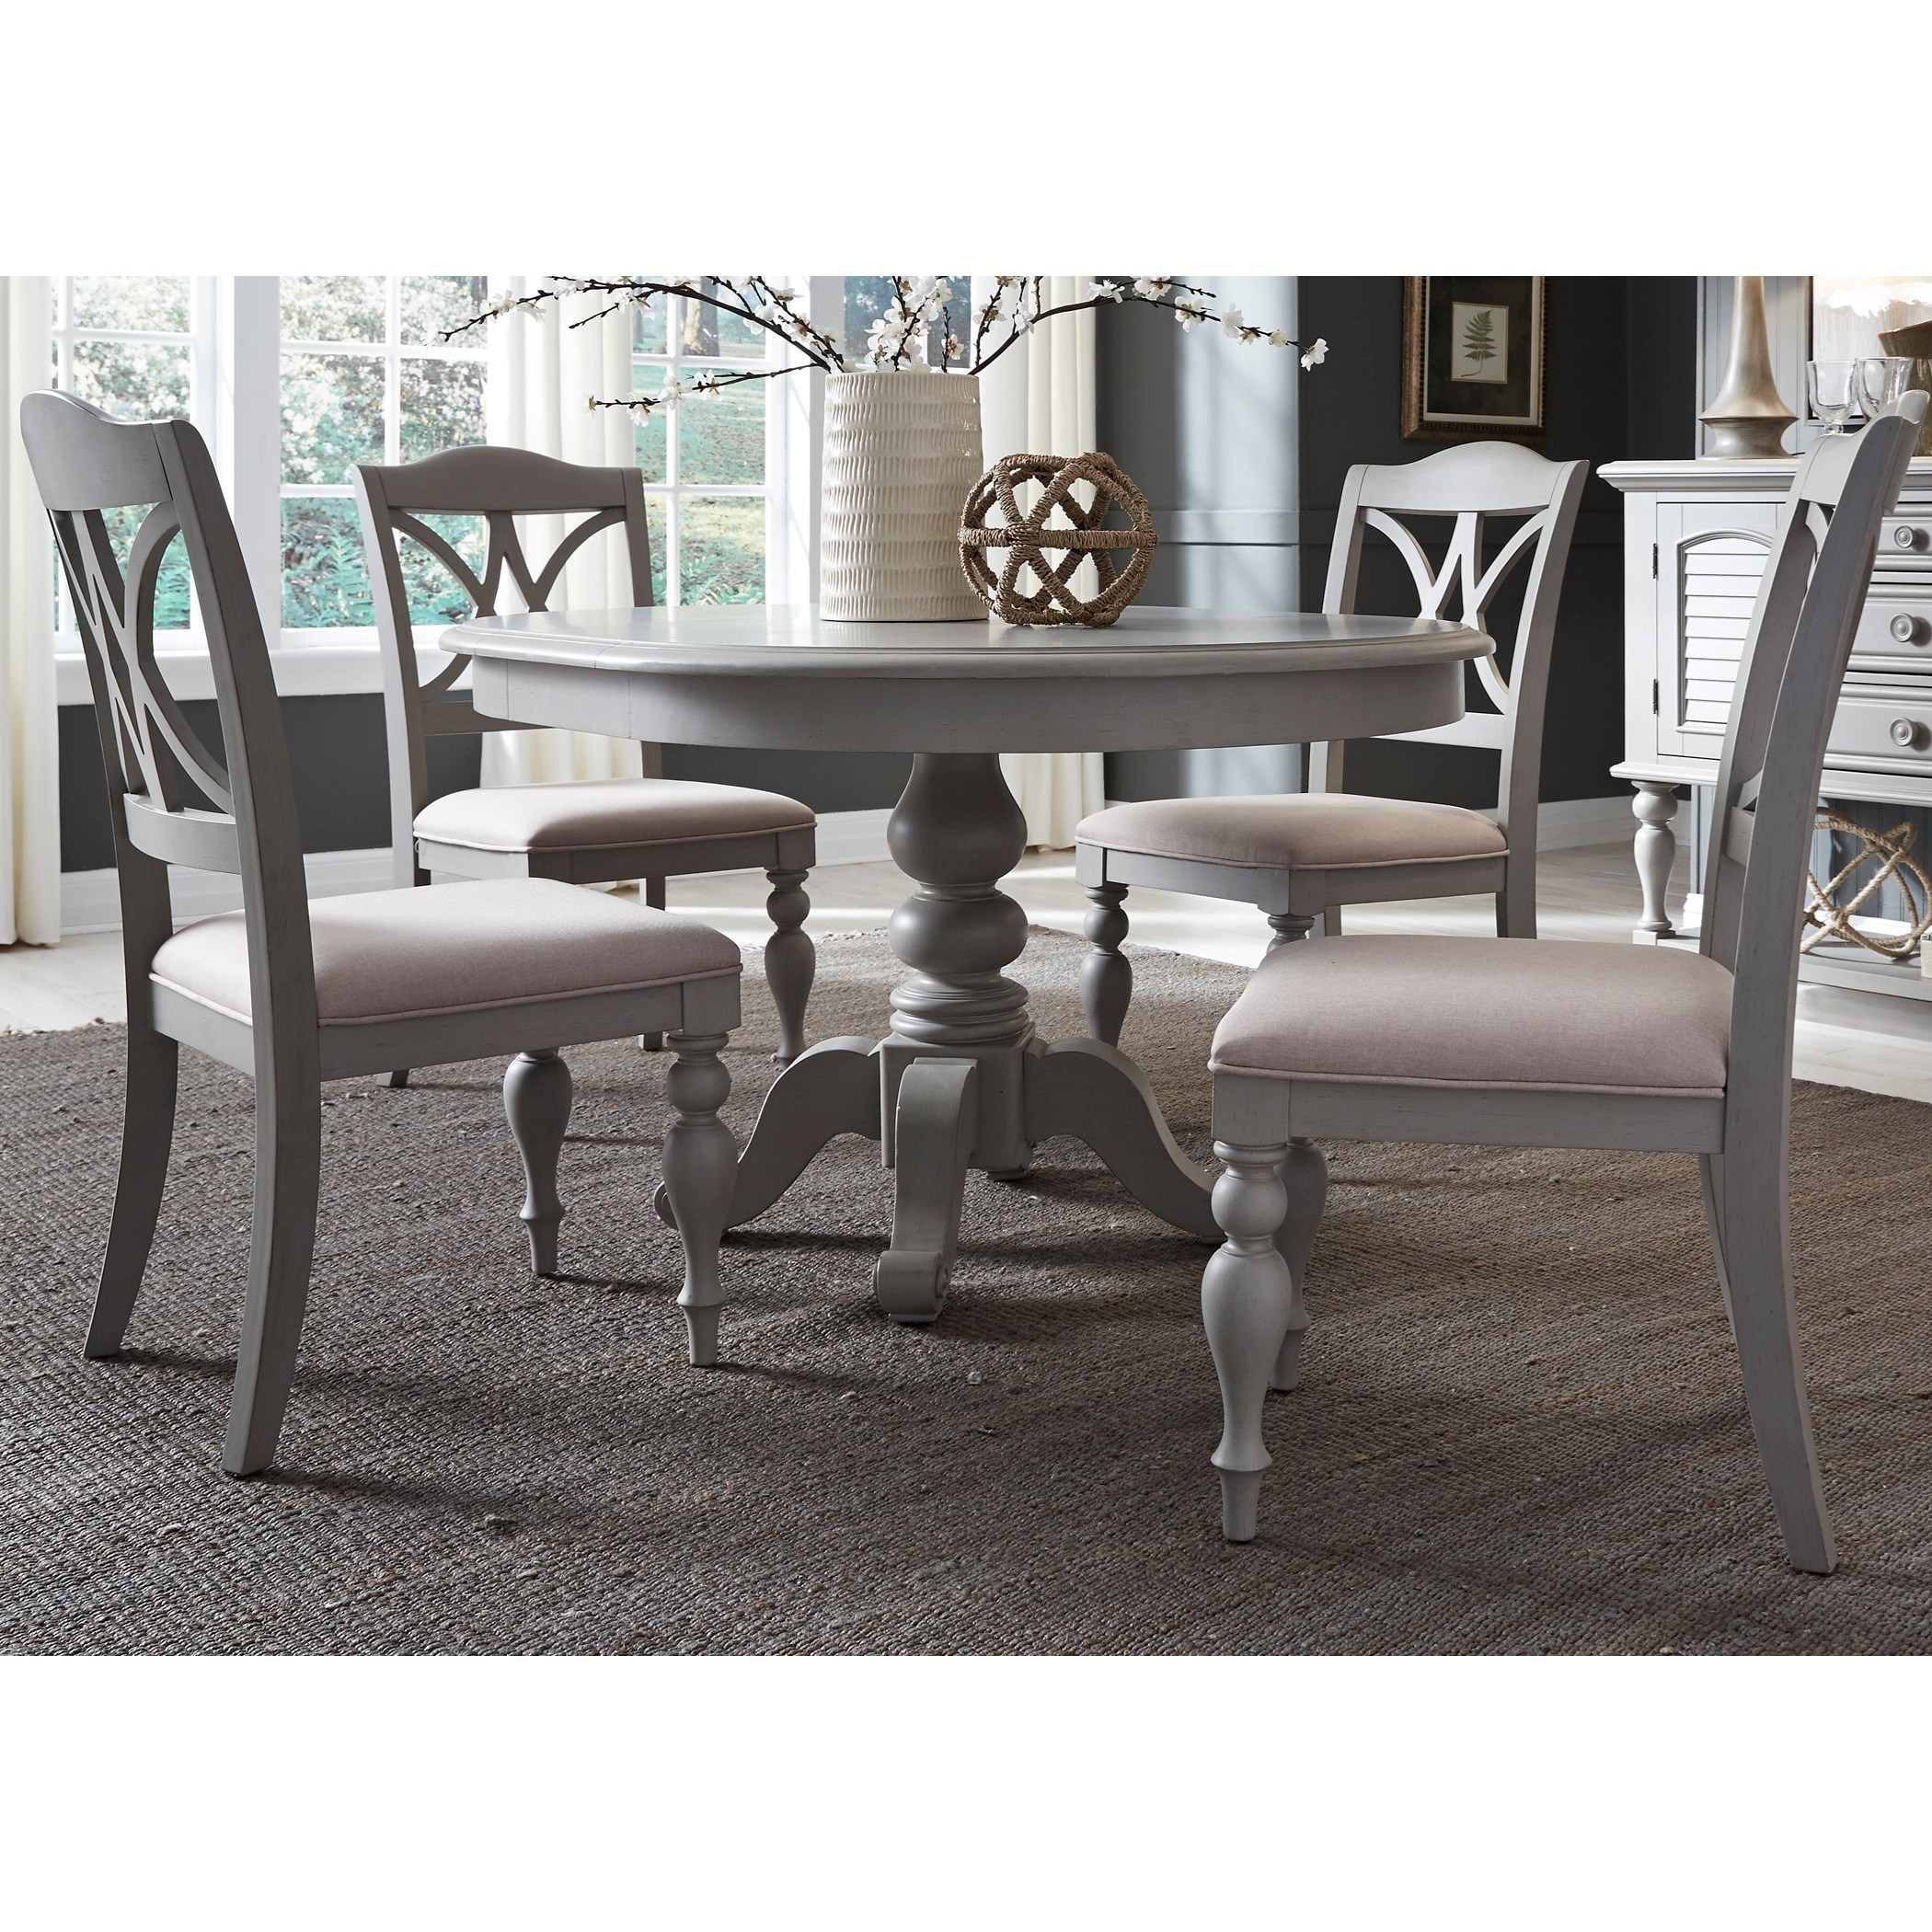 Liberty Furniture Summer House Dining 5 Piece Pedestal Table Set Item Number 407